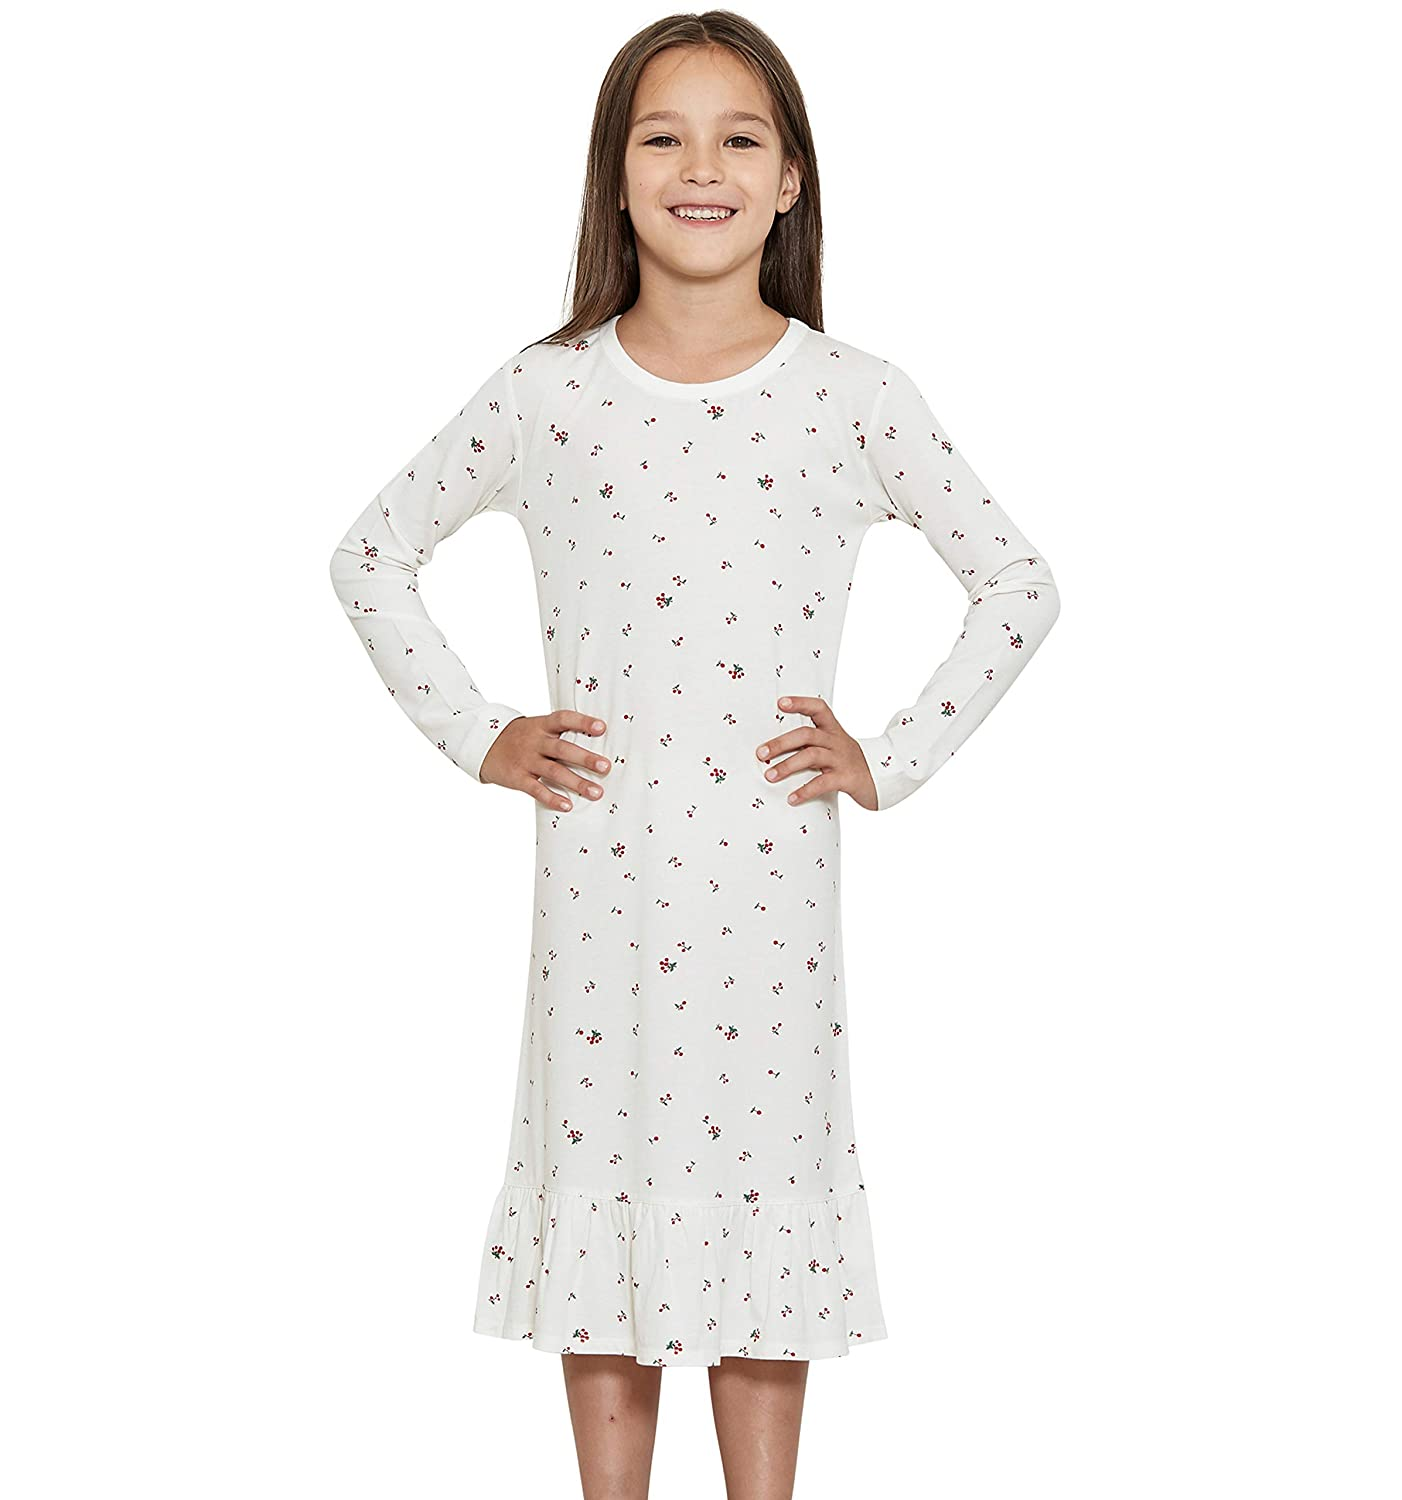 12 Years Long Sleeve orcite Girls Kids Toddler Nightgown Cotton Cute Pajamas Princess Night Gown Size 2t